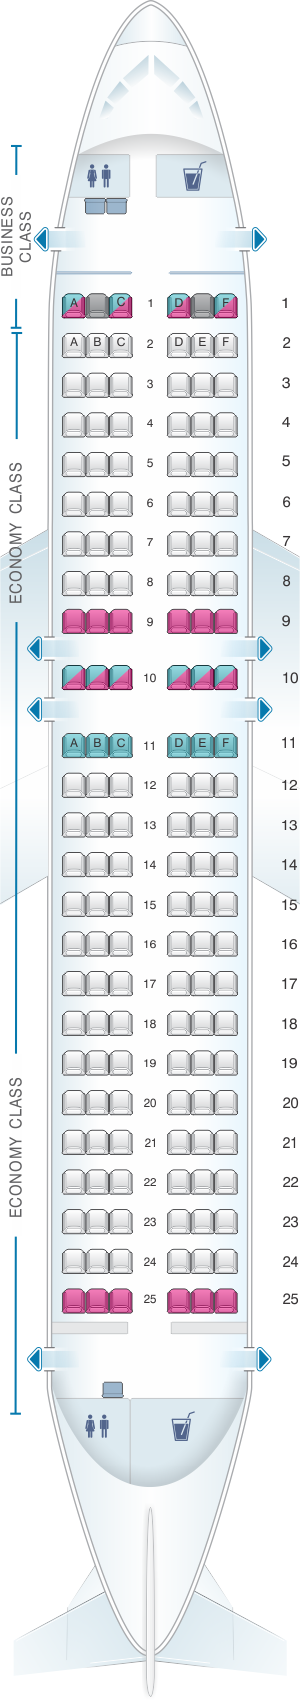 Seat map for airberlin Airbus A319 100